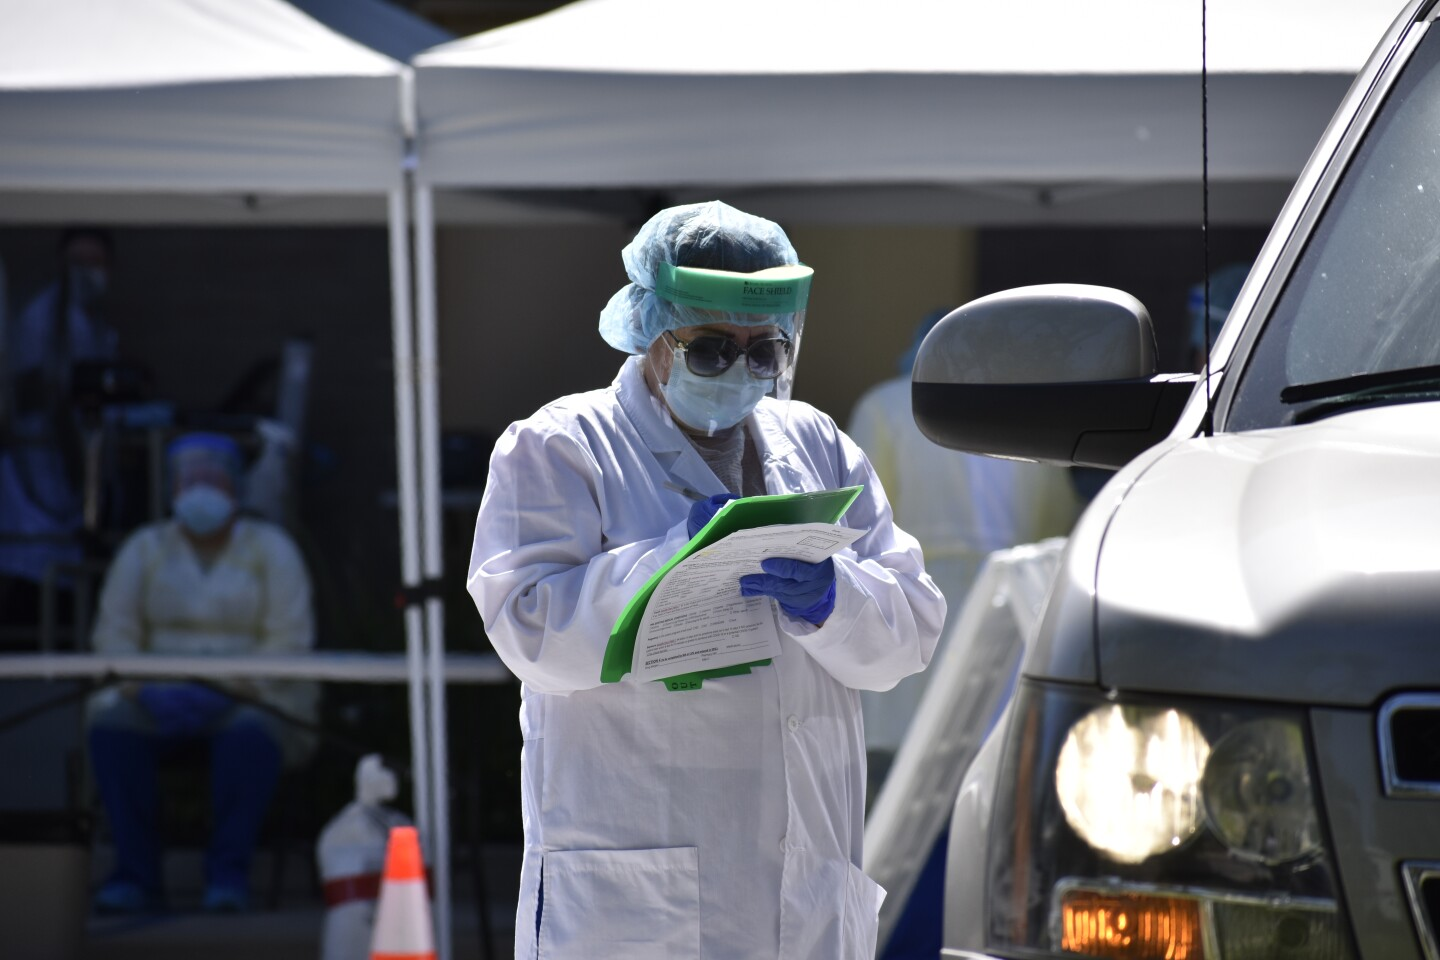 A health worker at a COVID-19 testing site in West Covina. | Courtesy of Altamed